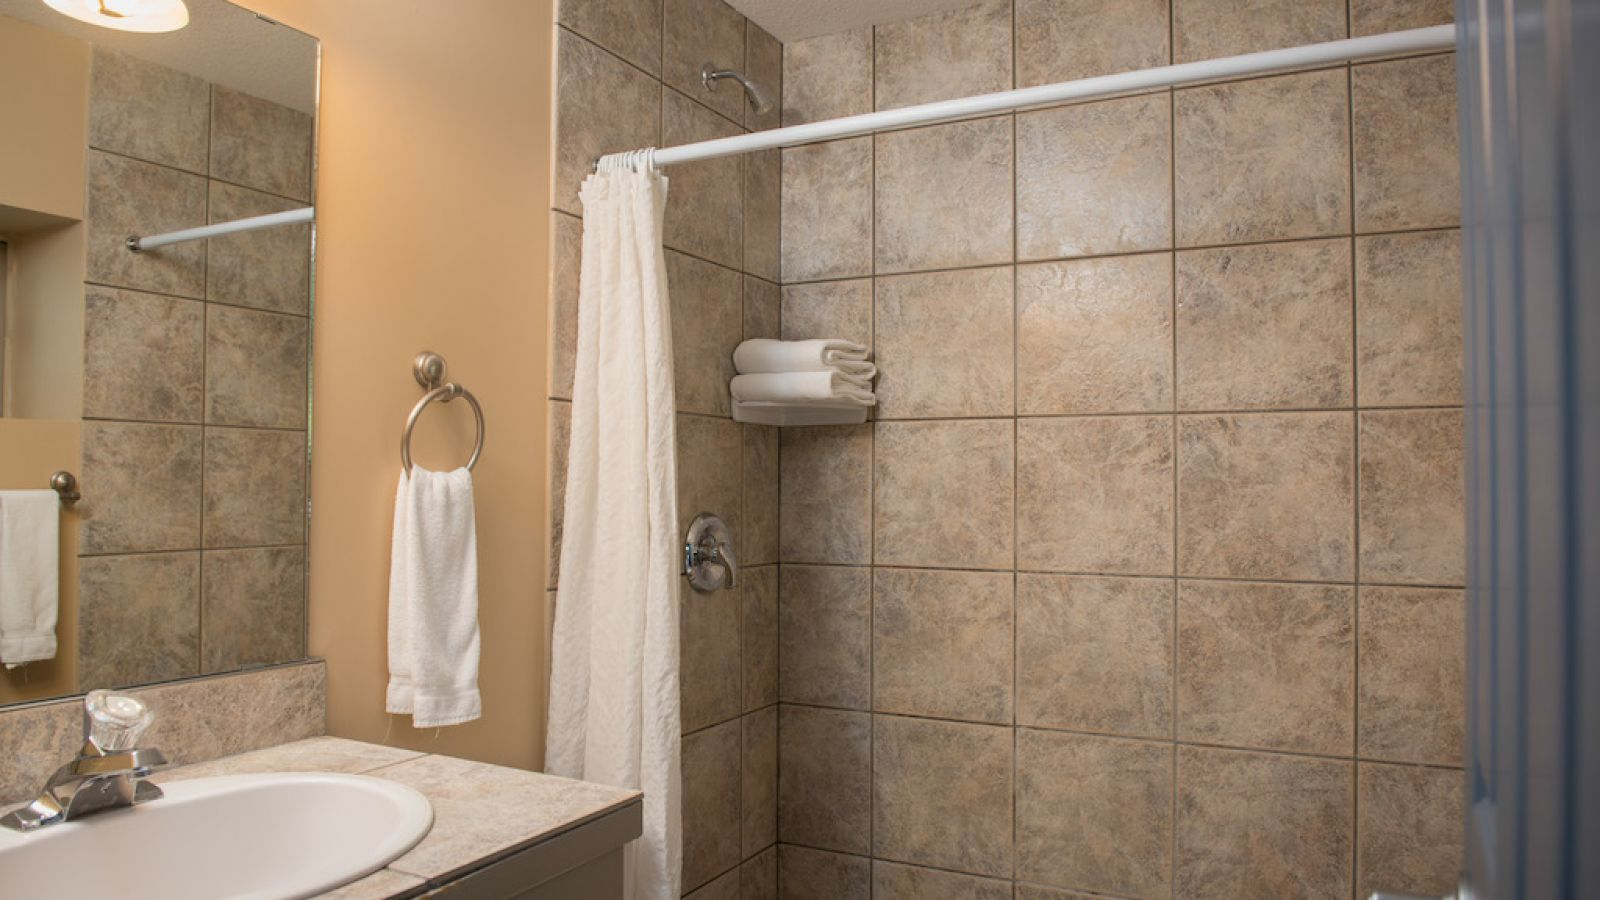 Oasis Building - standard room - Podollan Inn Salmon arm